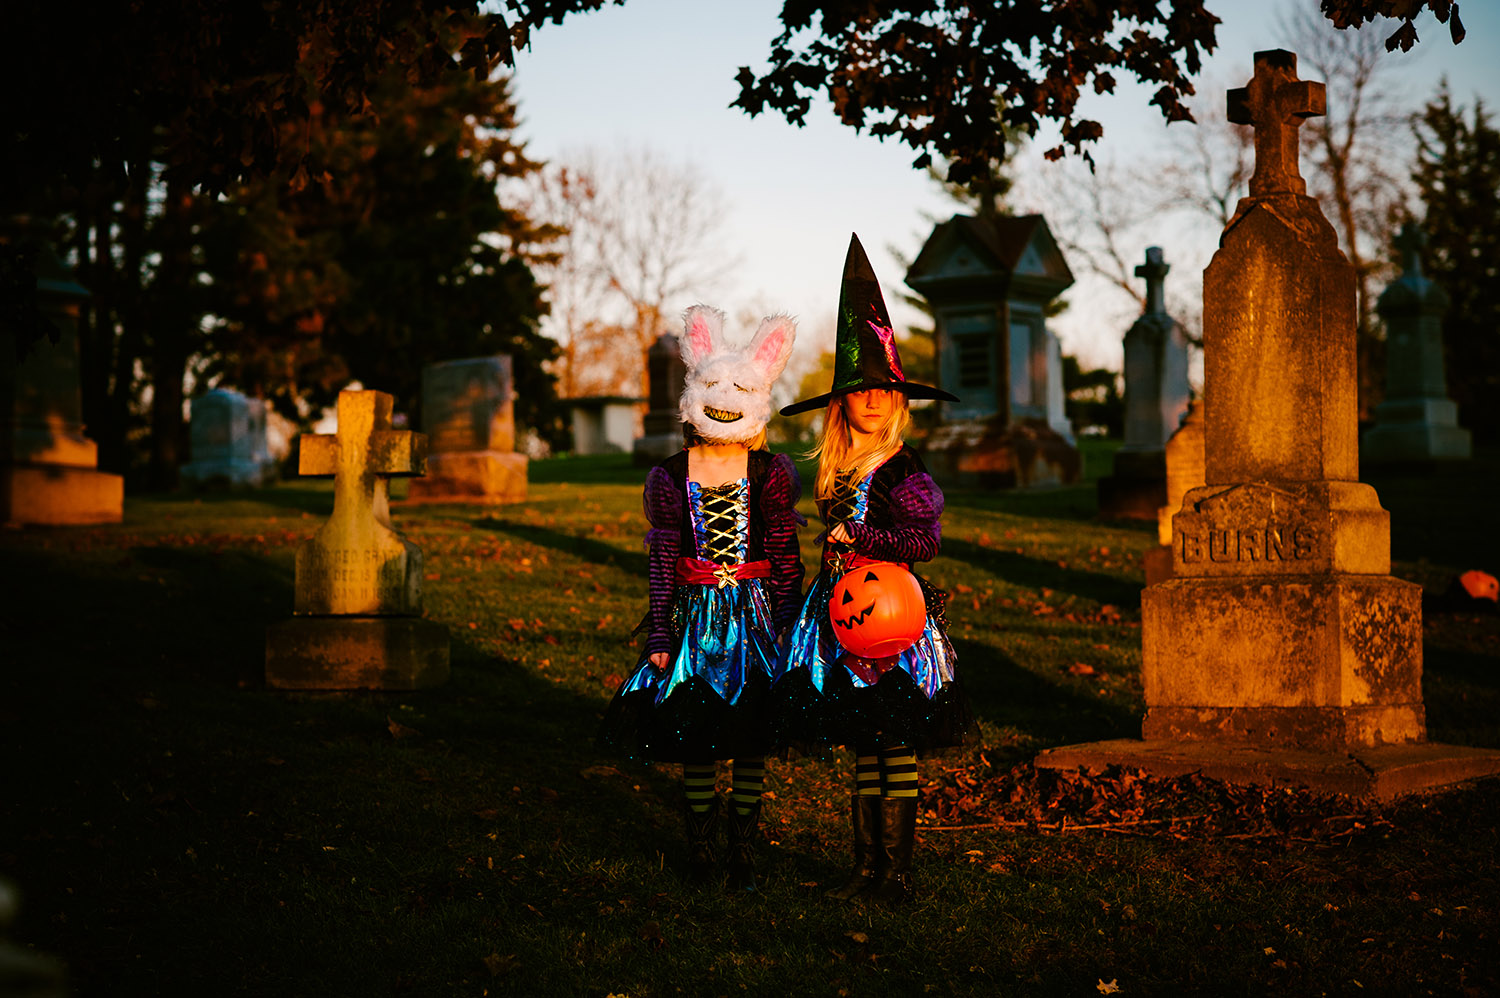 two young girls dressed as witches in a graveyard